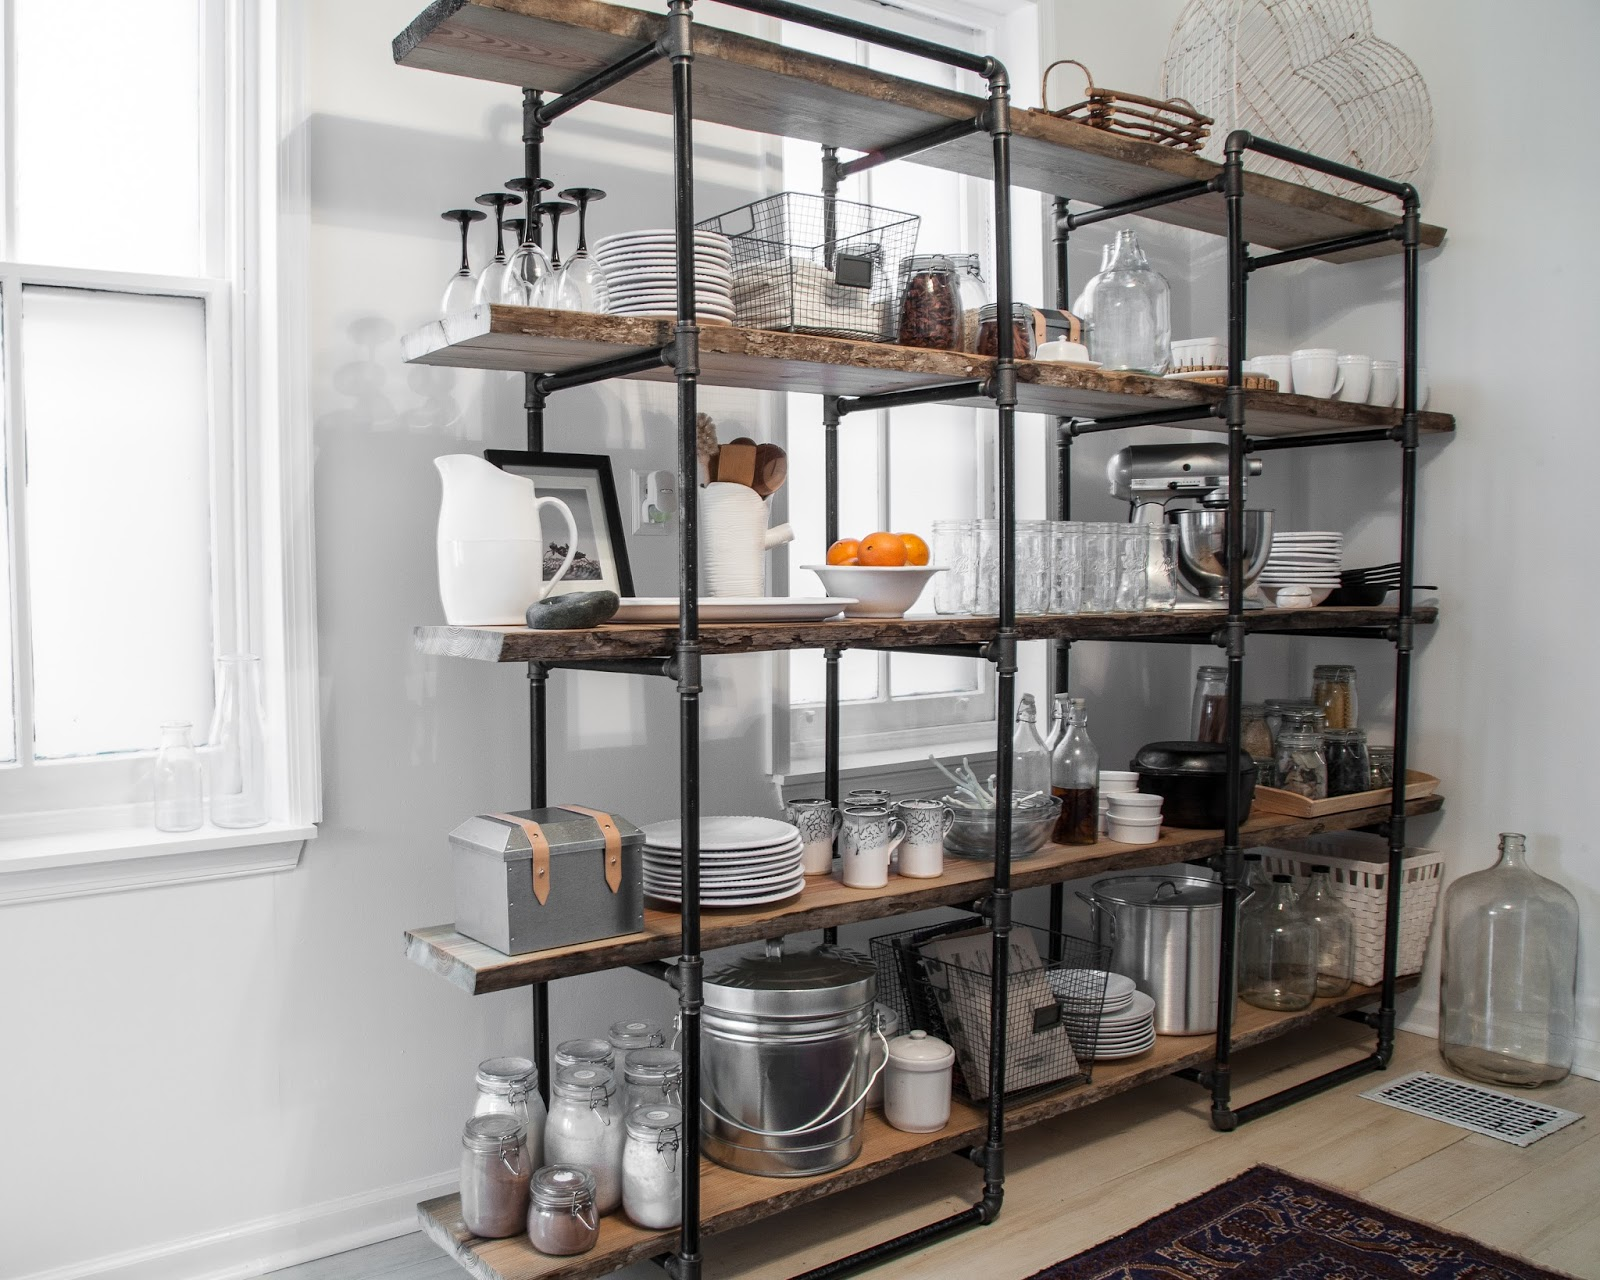 Diy project how to build a freestanding industrial shelf Open shelving